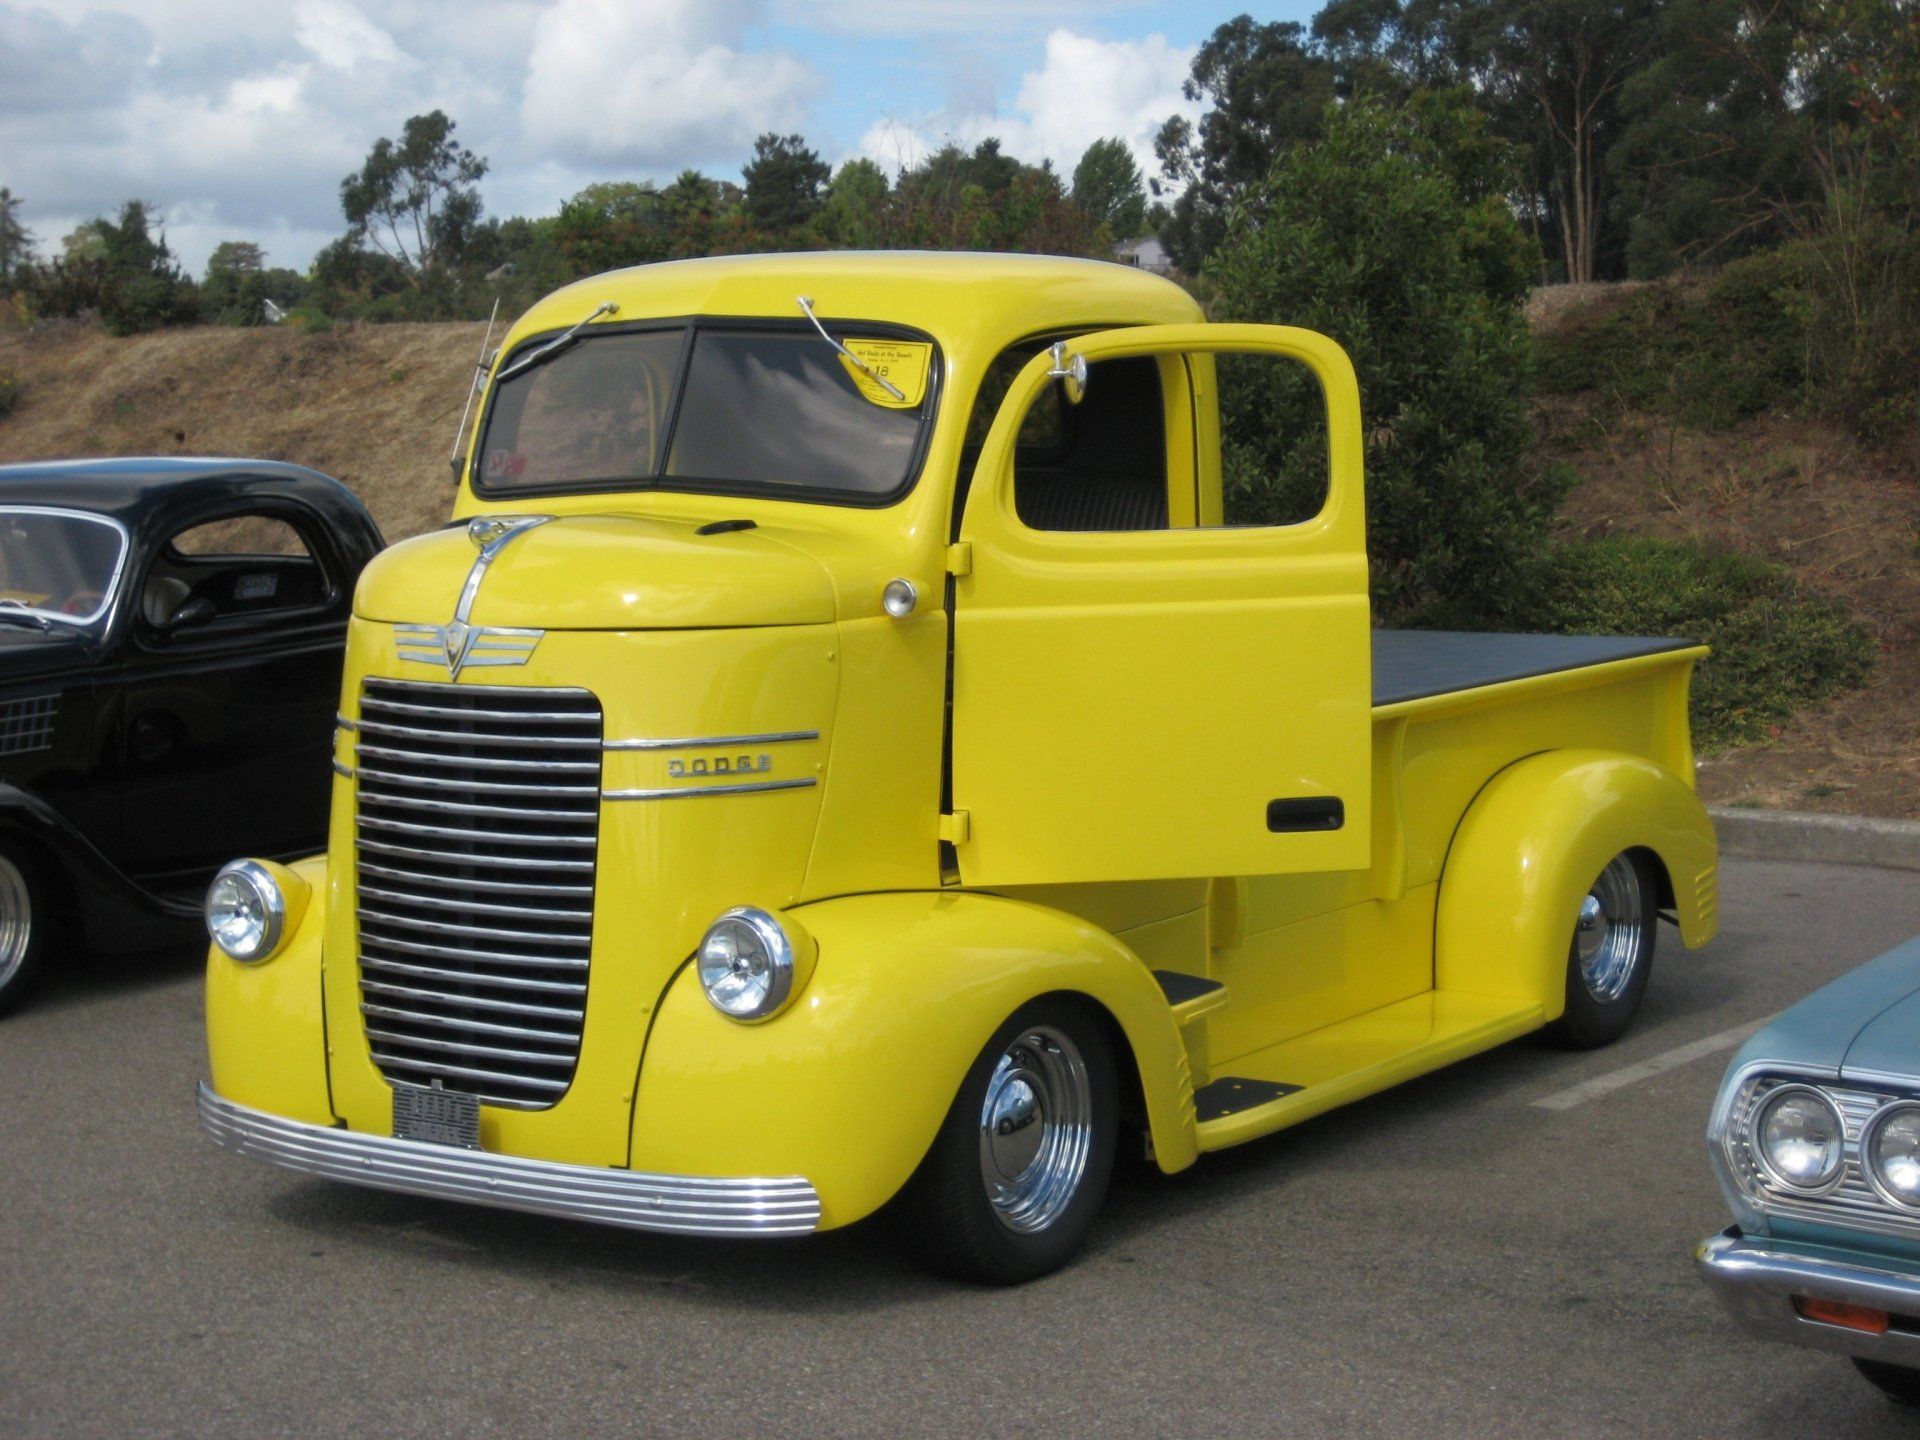 3072x2304 1940 Dodge Job Rated Vm 1 5 Ton Series Cab Over Engine Usa Wallpaper Background Image View Download Co Classic Chevy Trucks Classic Trucks Trucks